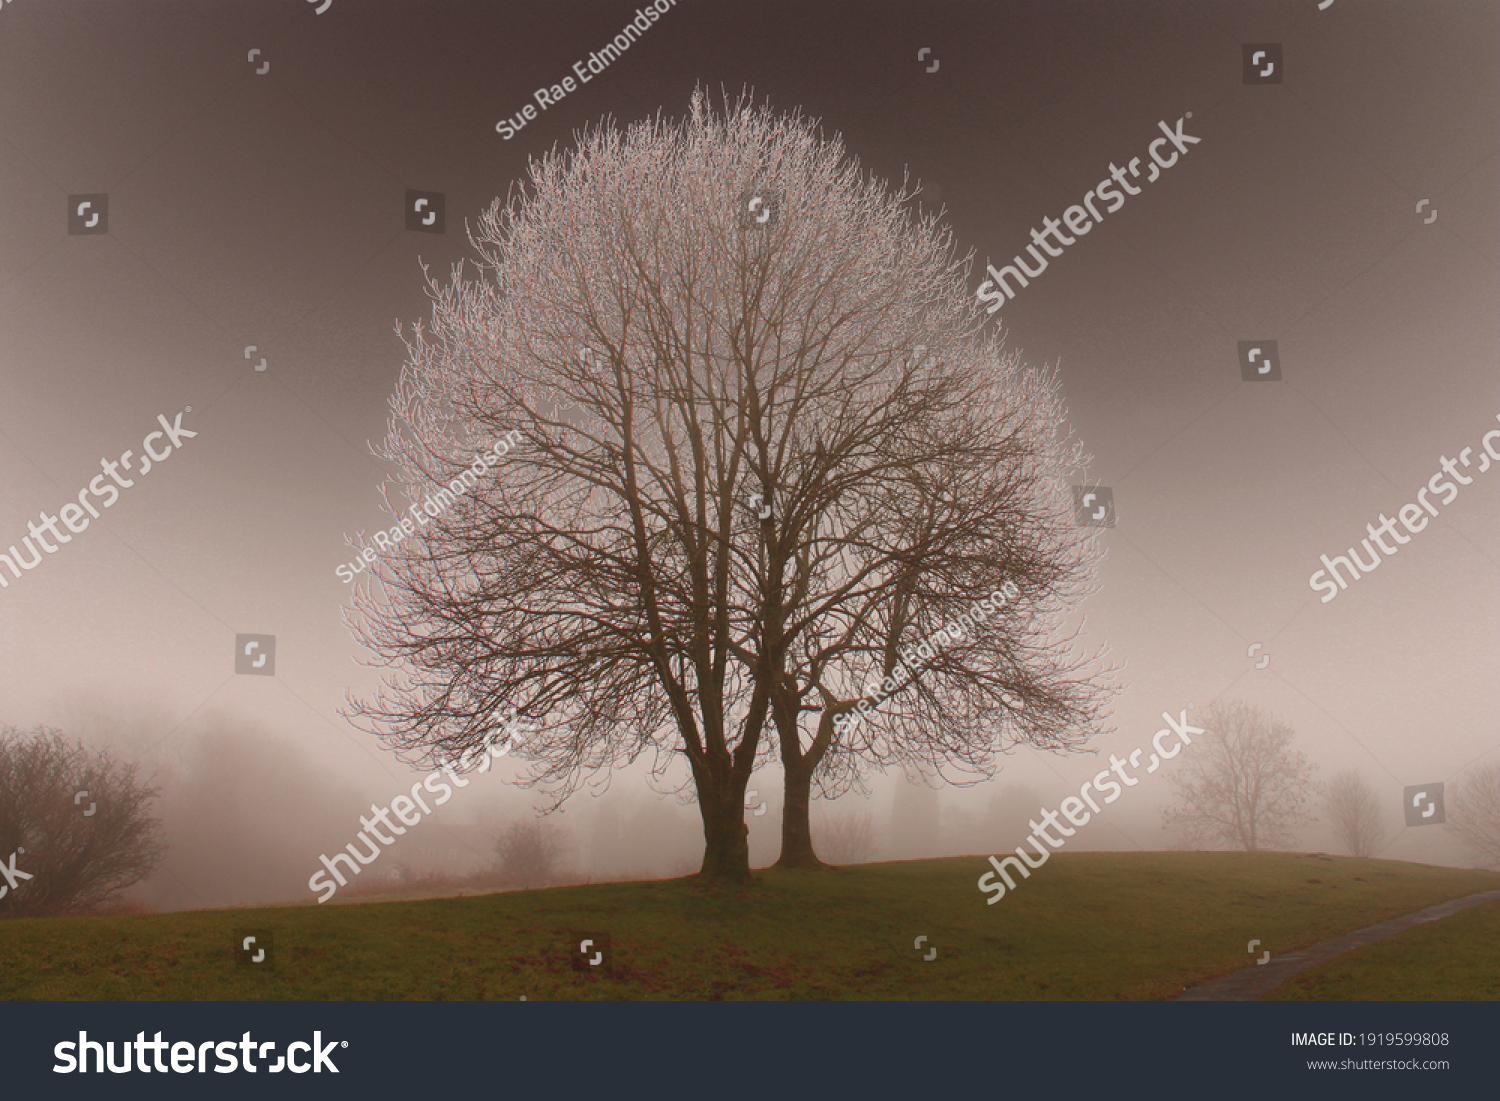 Atmospheric view of large ash tree on a cold and frosty morning